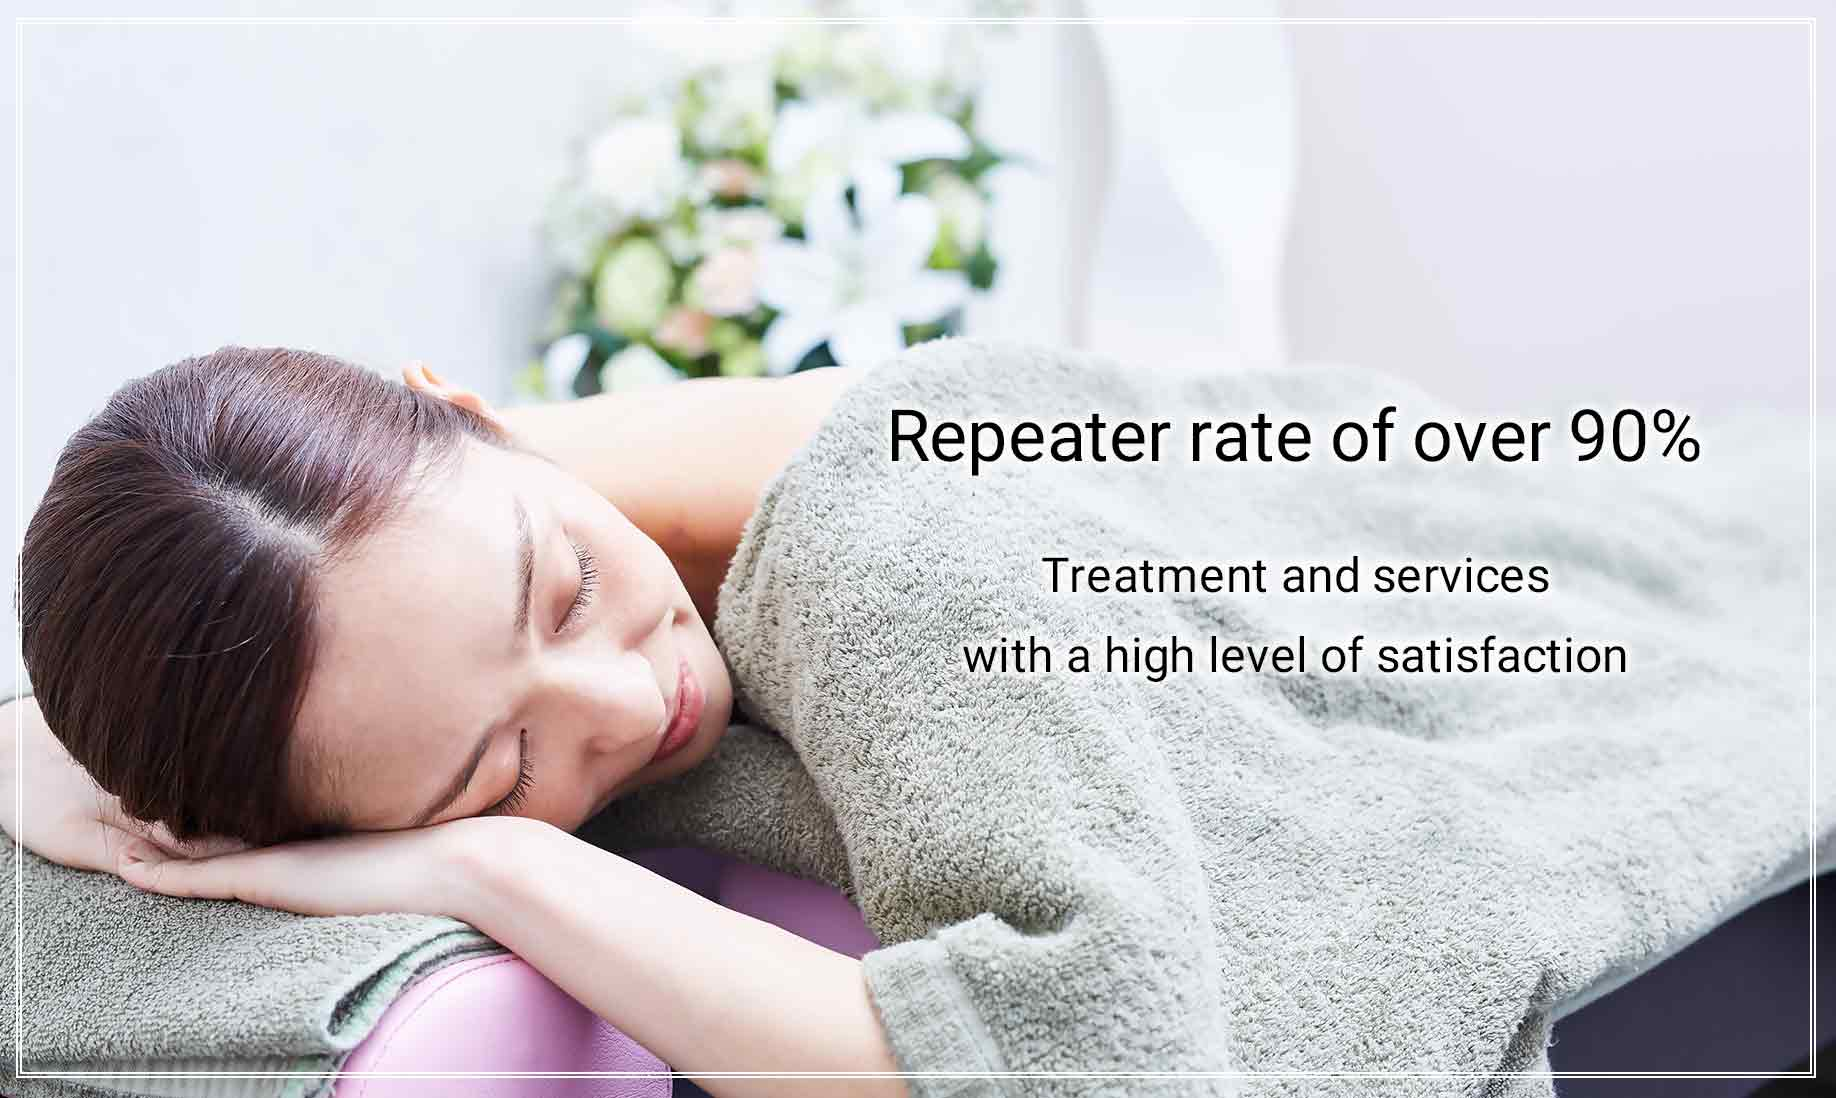 Treatment and services with a high level of satisfaction